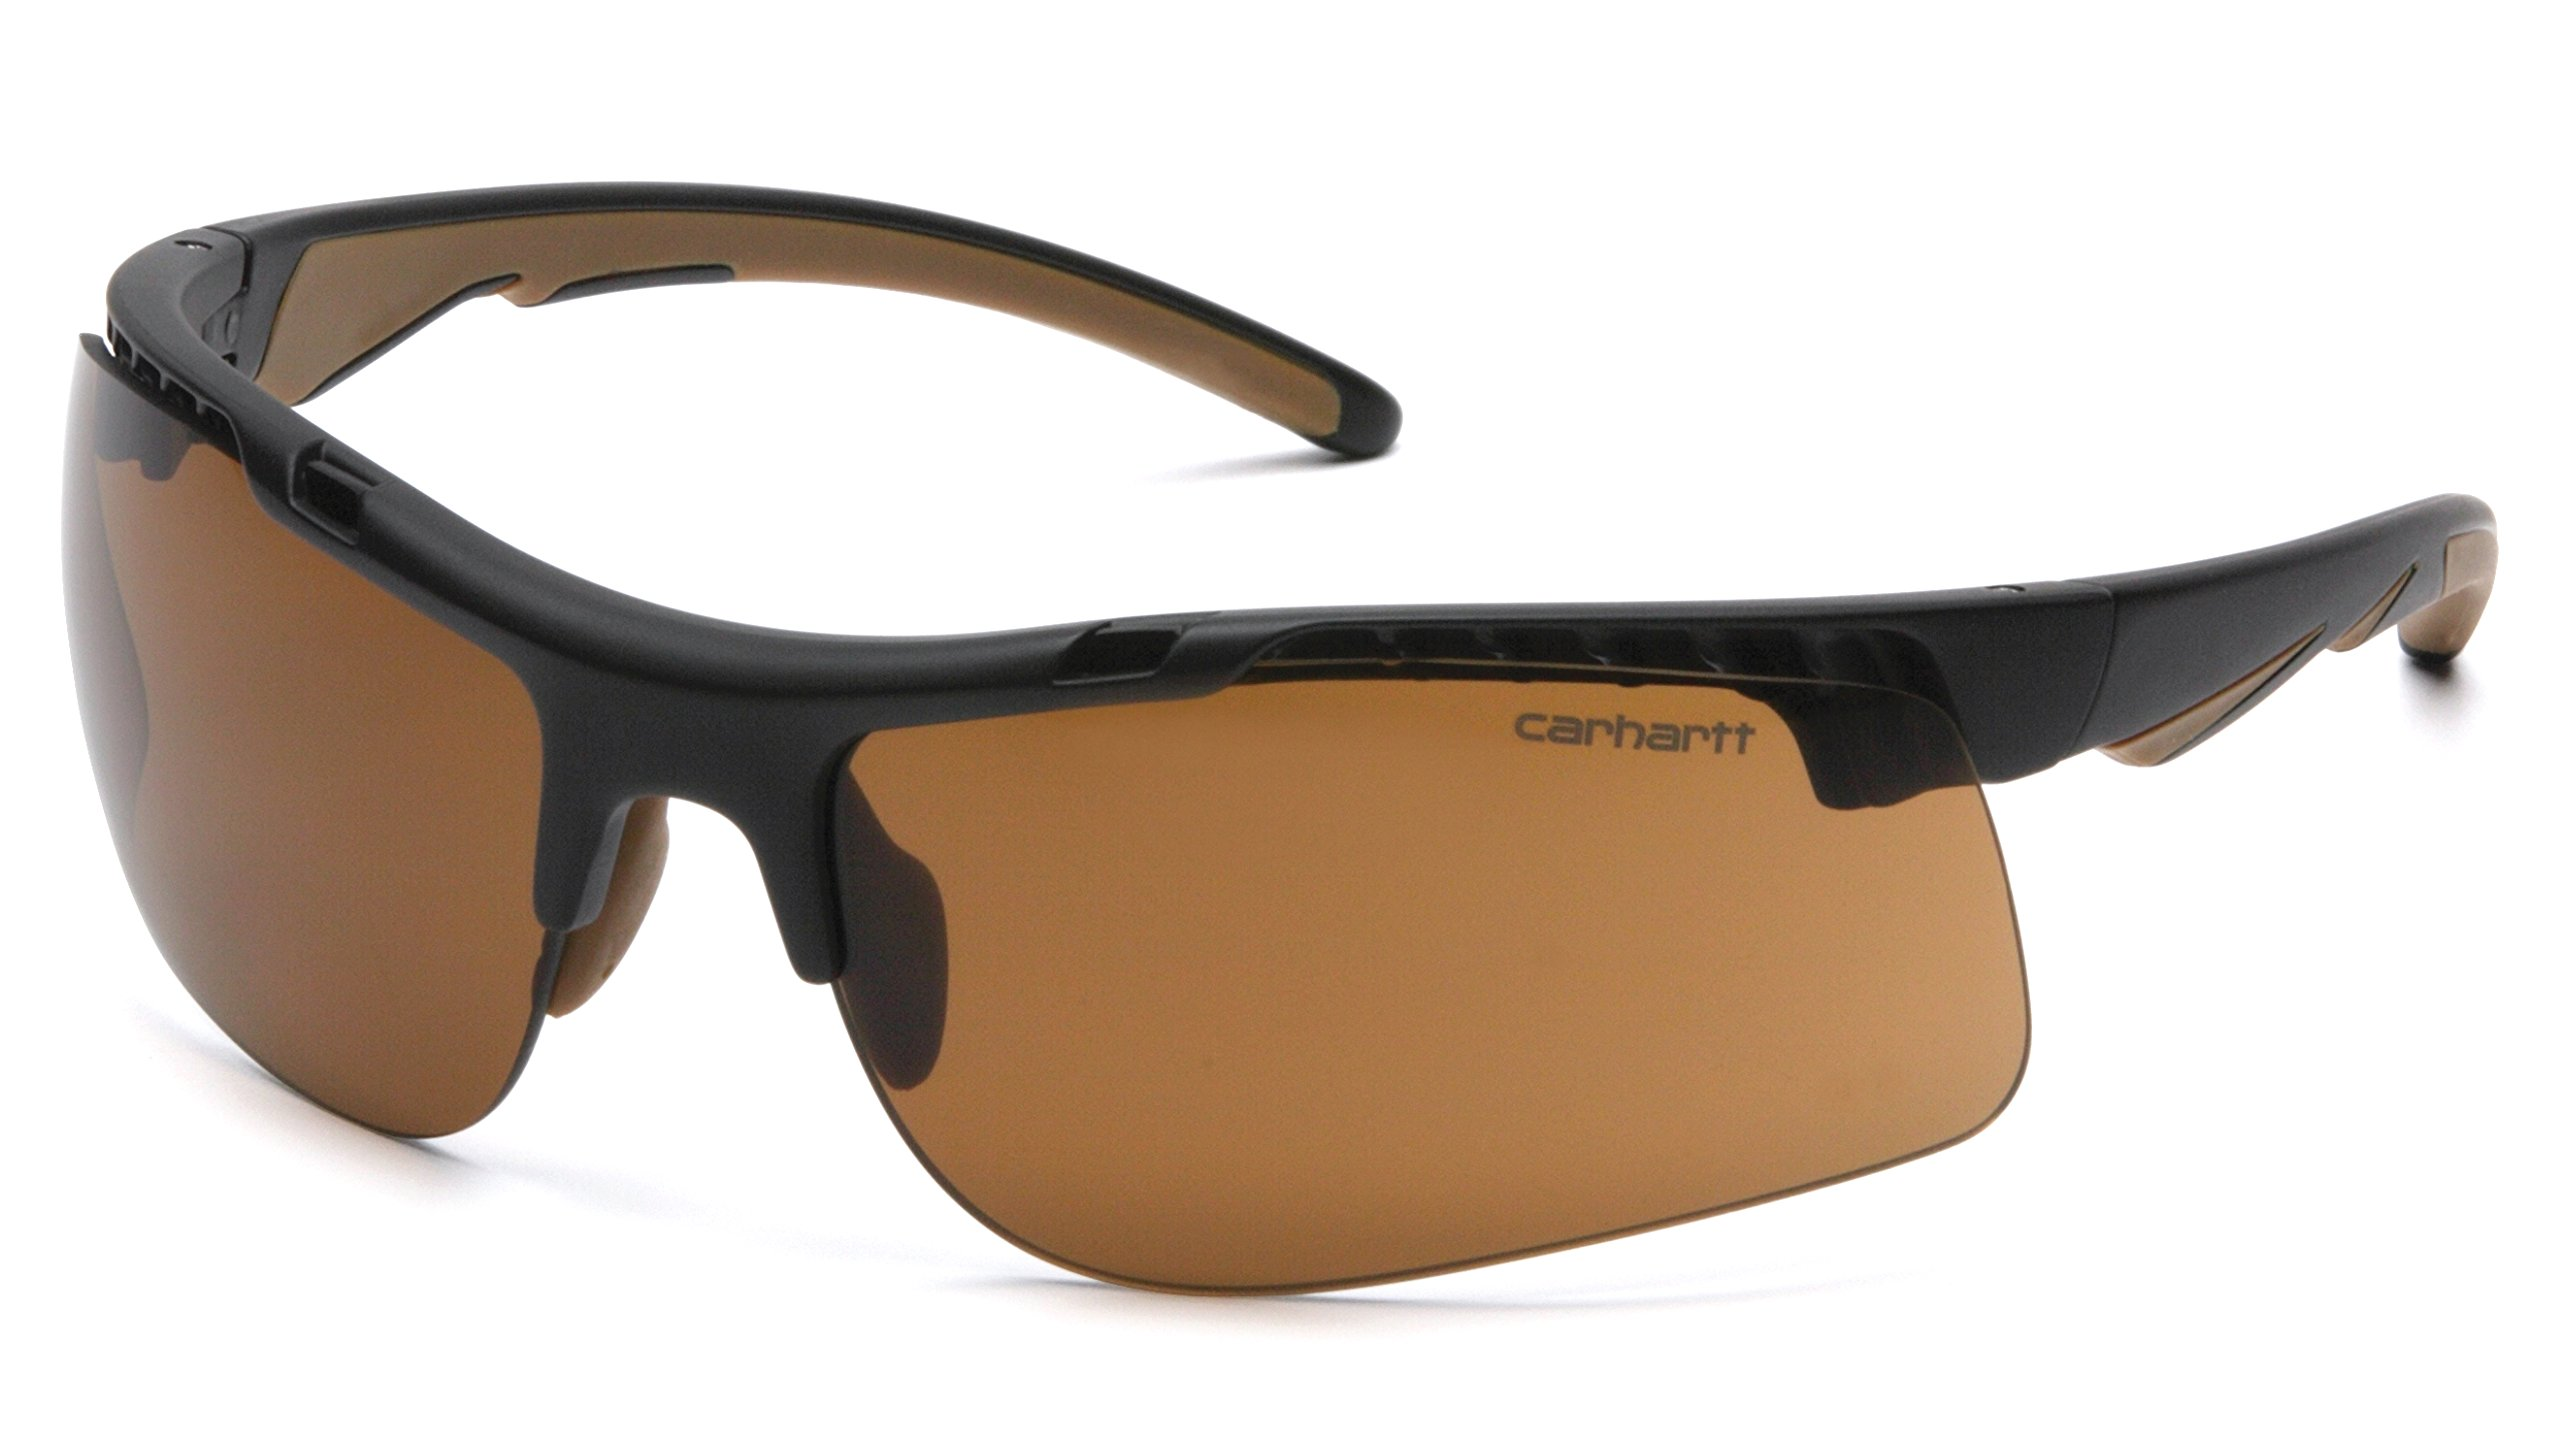 Carhartt Rockwood Safety Sunglasses with Sandstone Bronze Anti-fog Lens